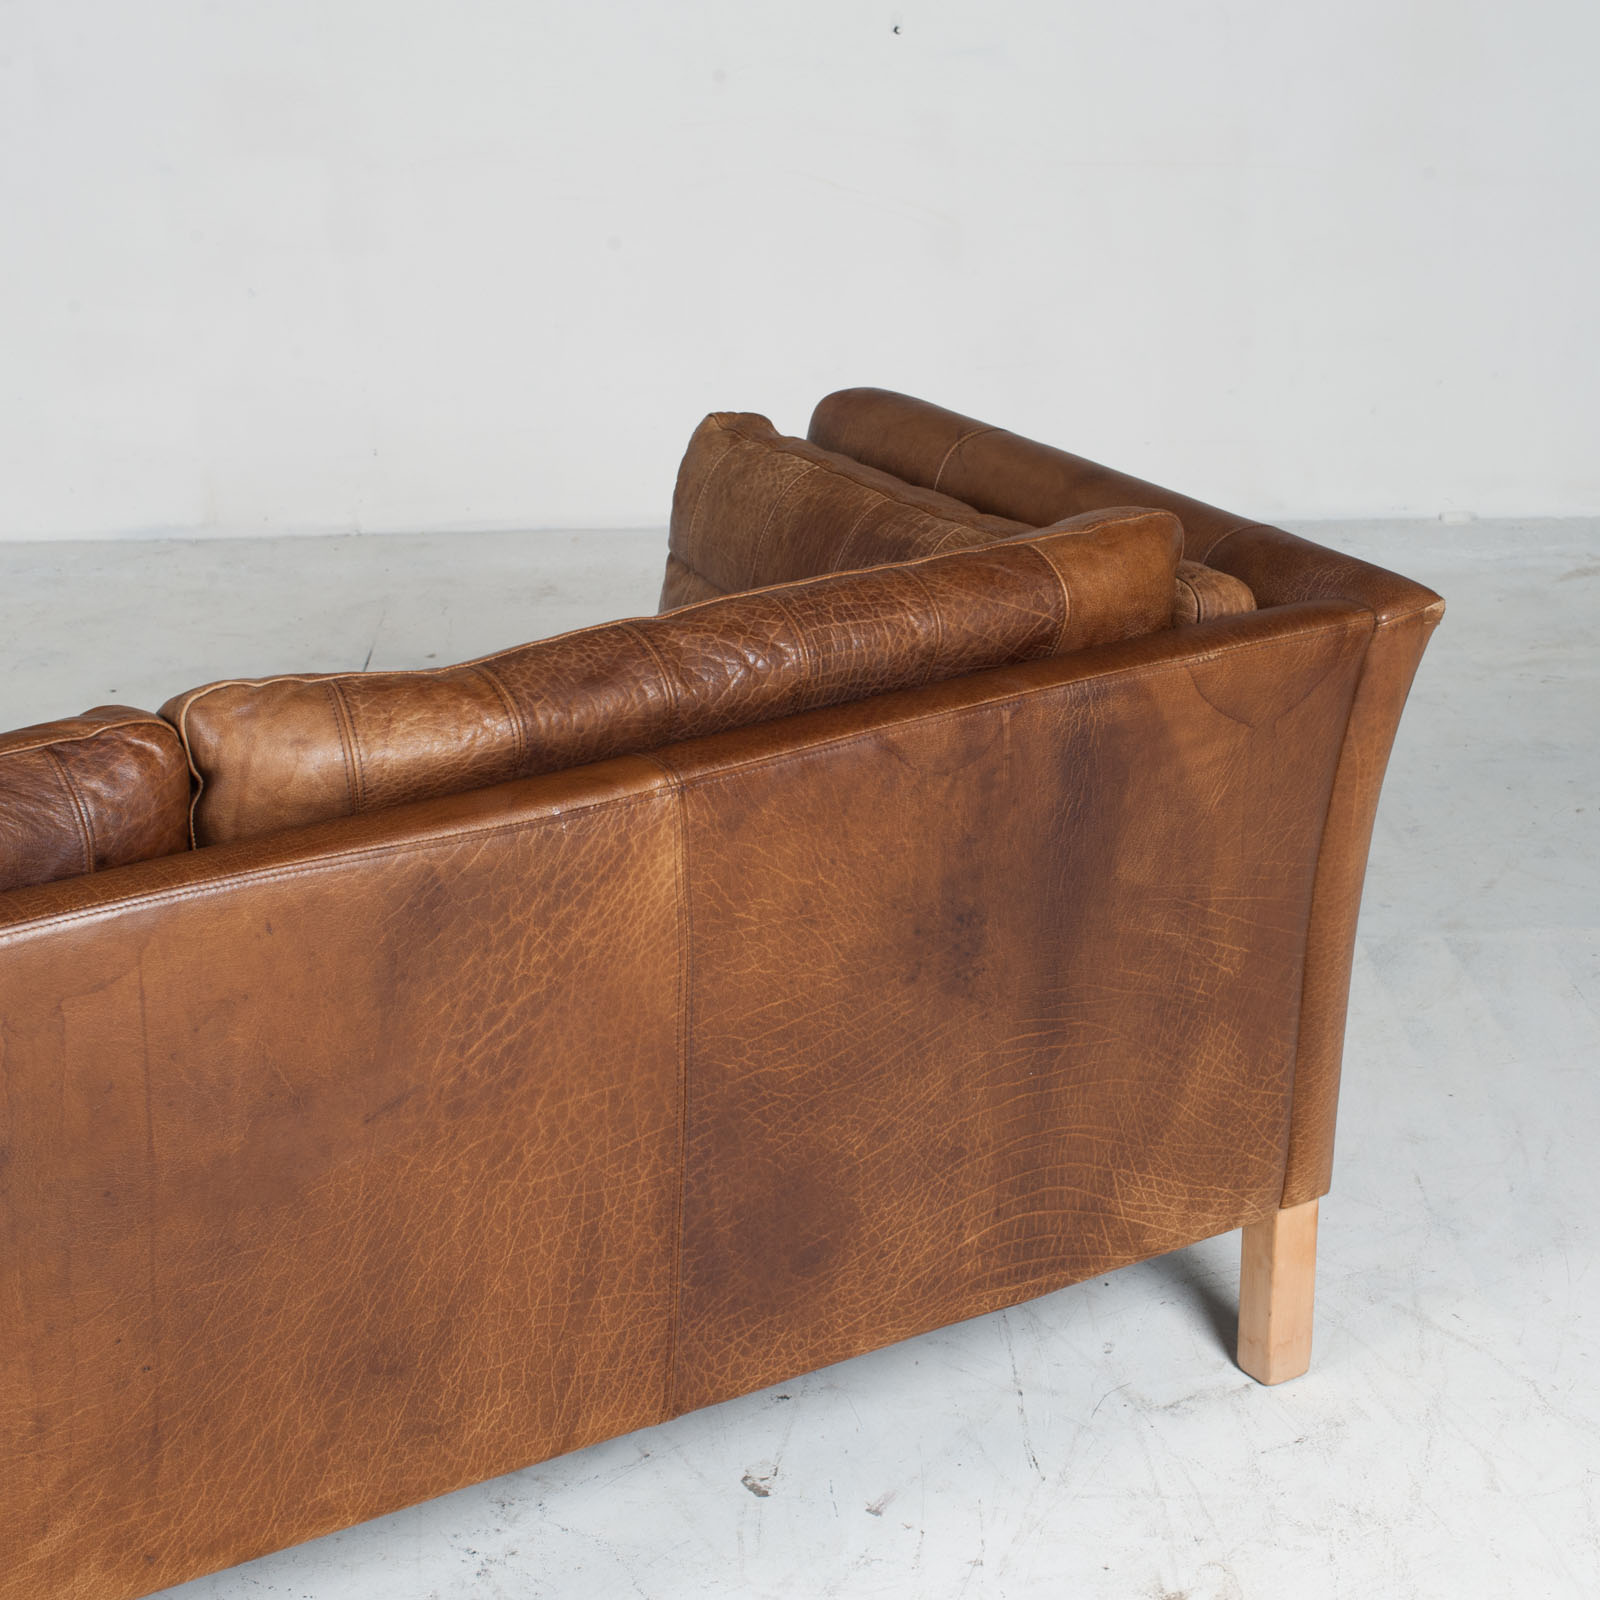 2.5 Seat Sofa In Tan Panelled Leather 1960s Denmark16